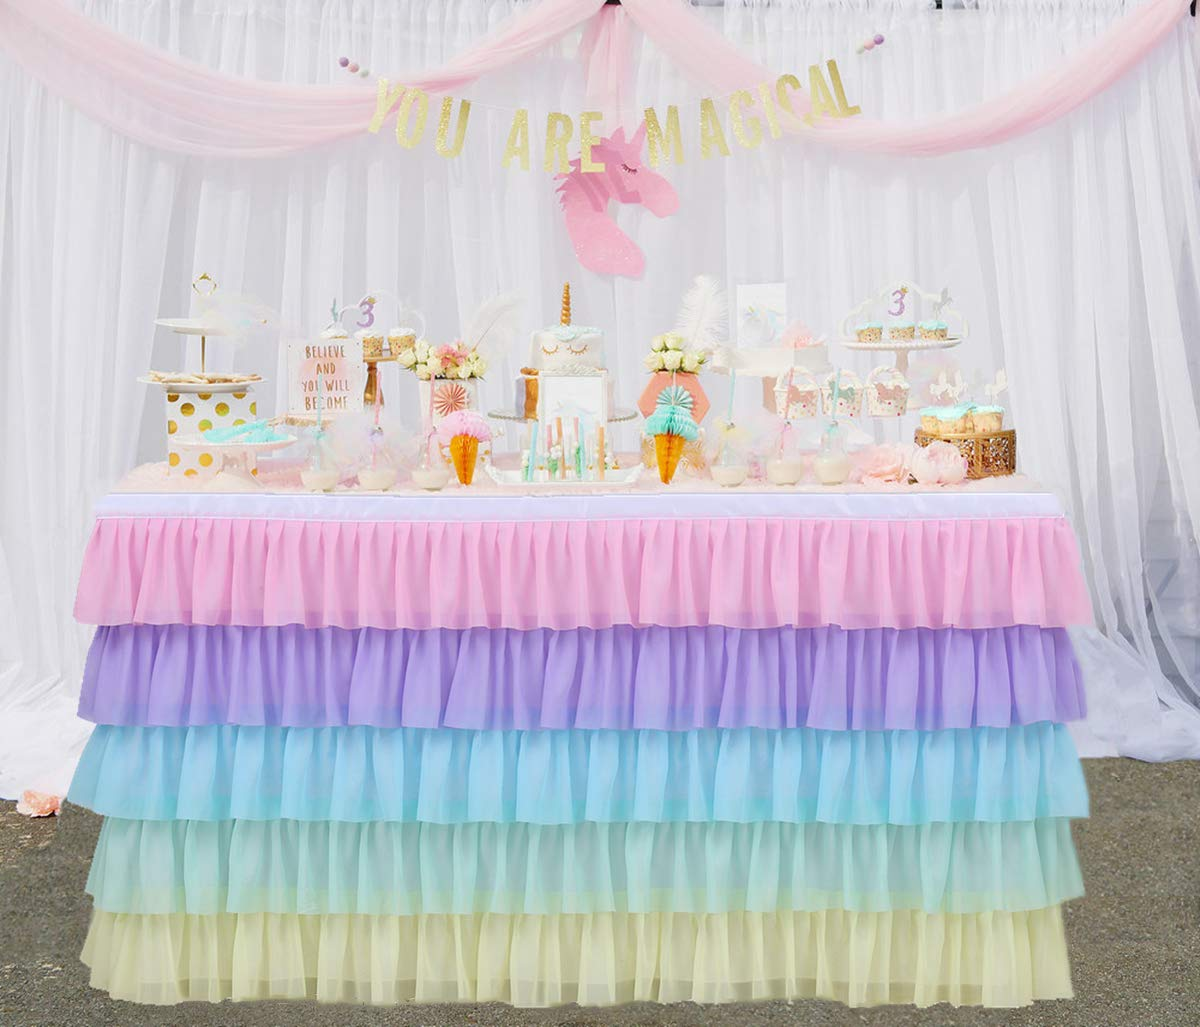 Rainbow Tulle Table Skirt Tutu Table Clothing for Stage Performance Birthday Baby Shower Party Decoration,14FT Unicorn Table Skirt for Rectangle and Round Tables. by Tulle Dream